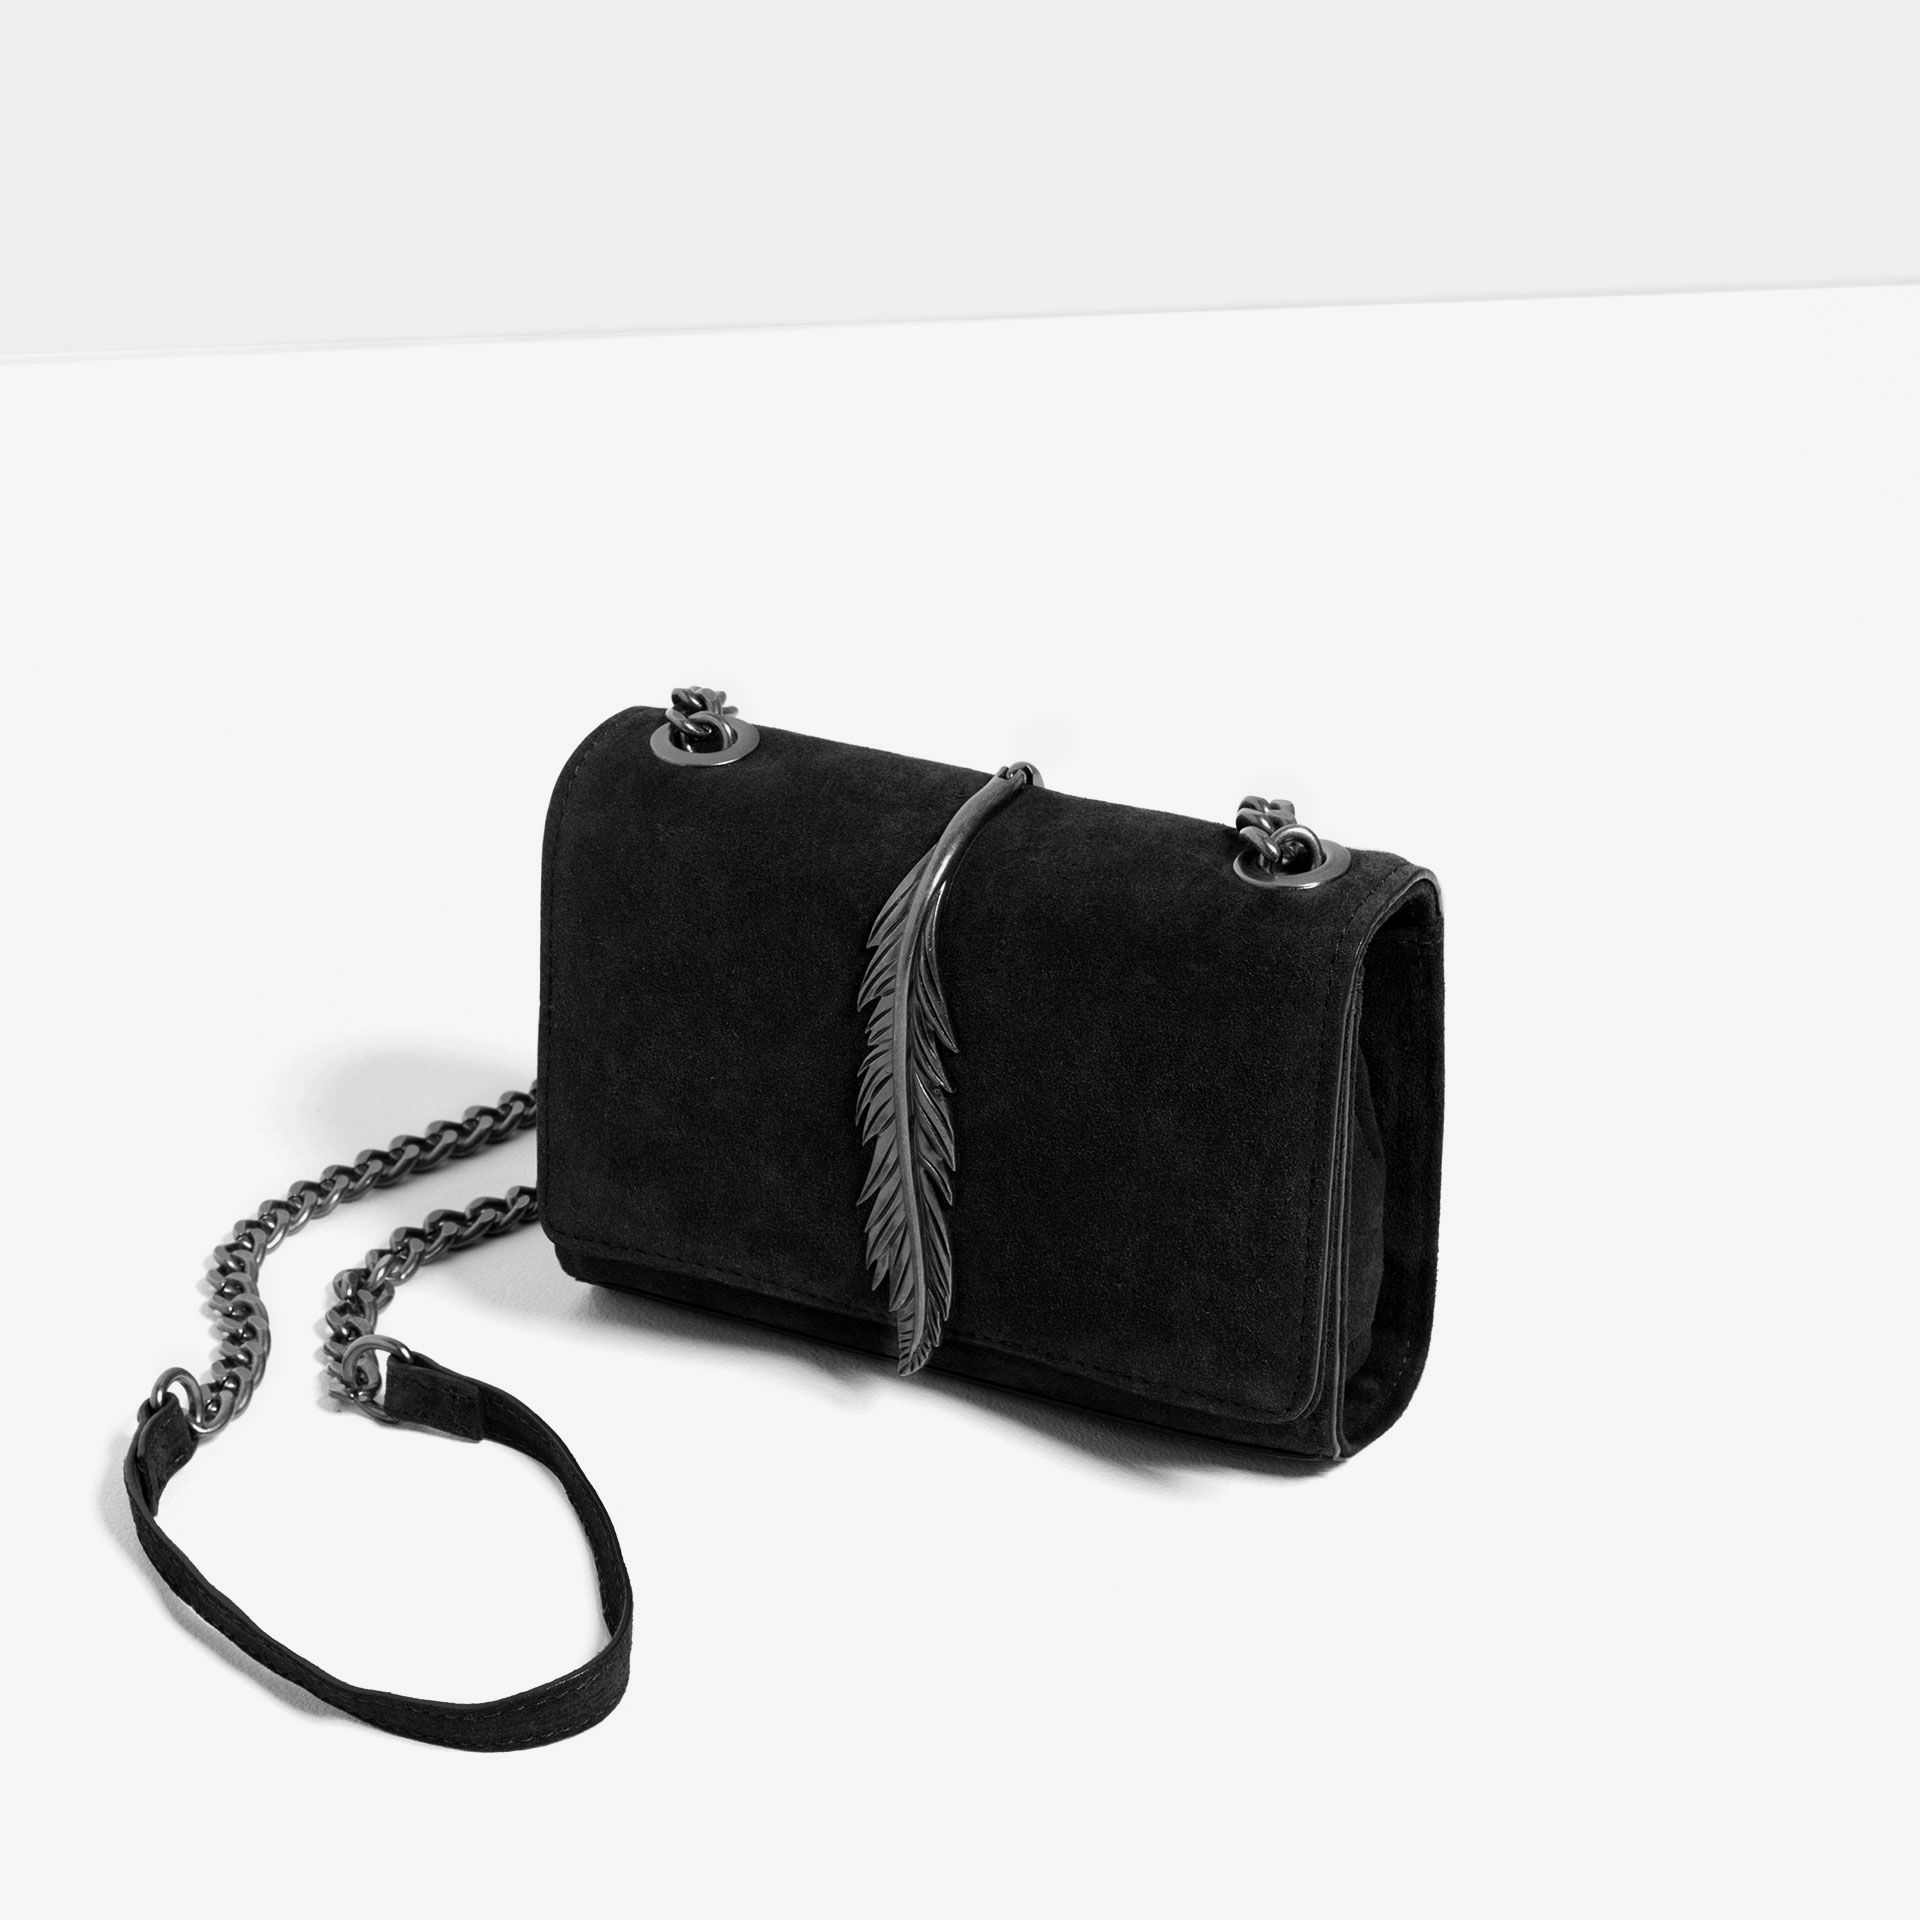 Mini leather tote bag zara - Find The Perfect Purse For You This Fw 2017 At Zara Online Women S Faux Fur Quilted Studded Or Fringe Purses Backpacks And Belt Bags For Any Occasion